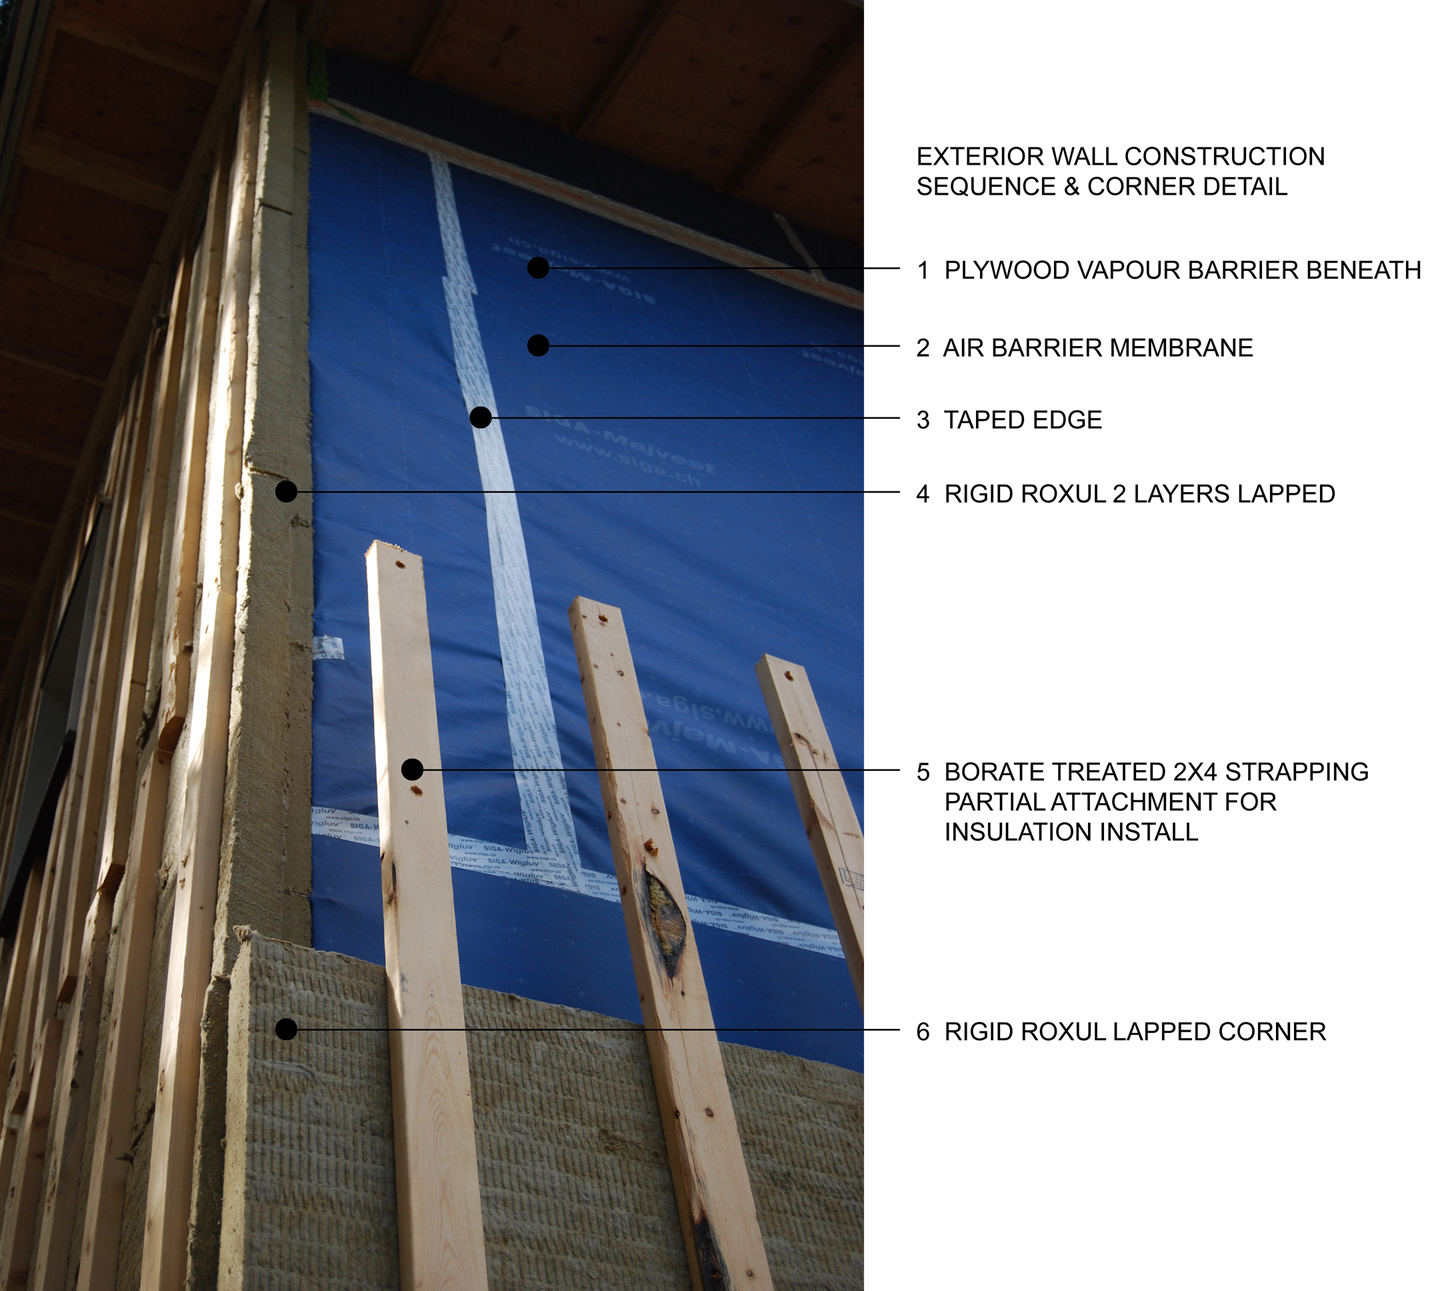 Air Barrier Membrane : Sandrin leung architecture passive house langley wall